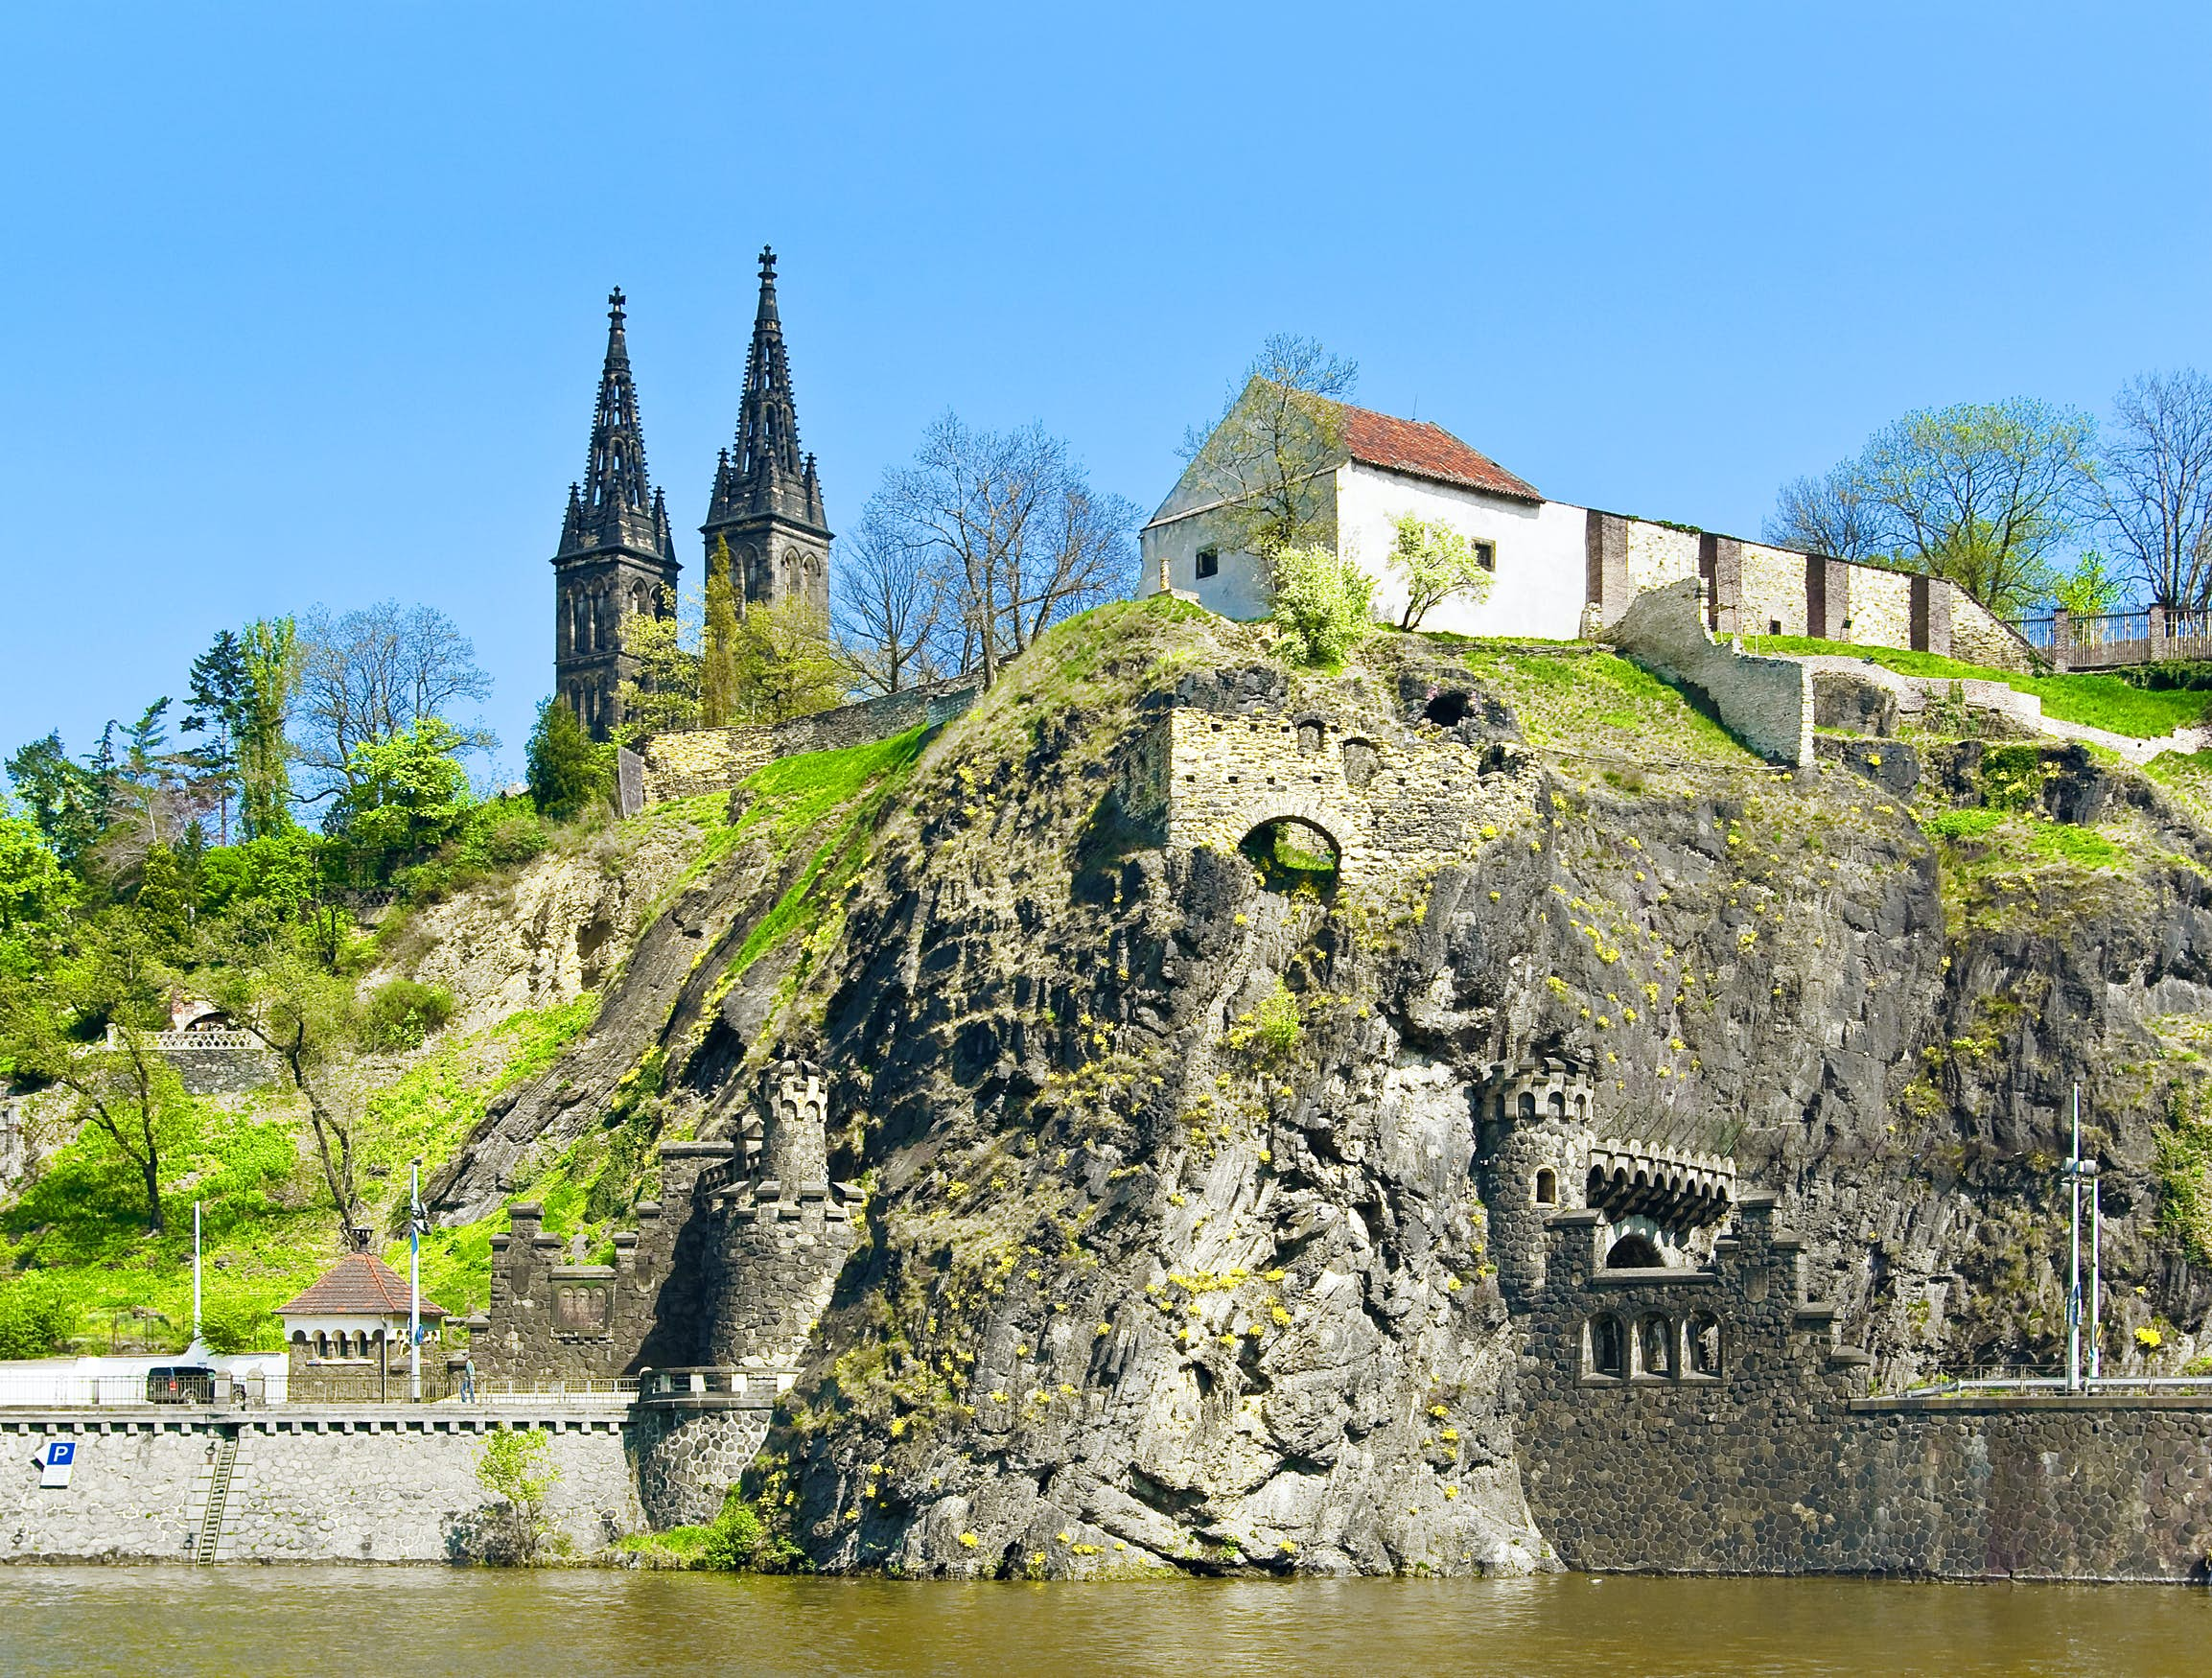 The Vyšehrad Citadel built on the Vltava River; rock ramparts flank the water's edge and rise up the slope to buildings and the twin-spired church.